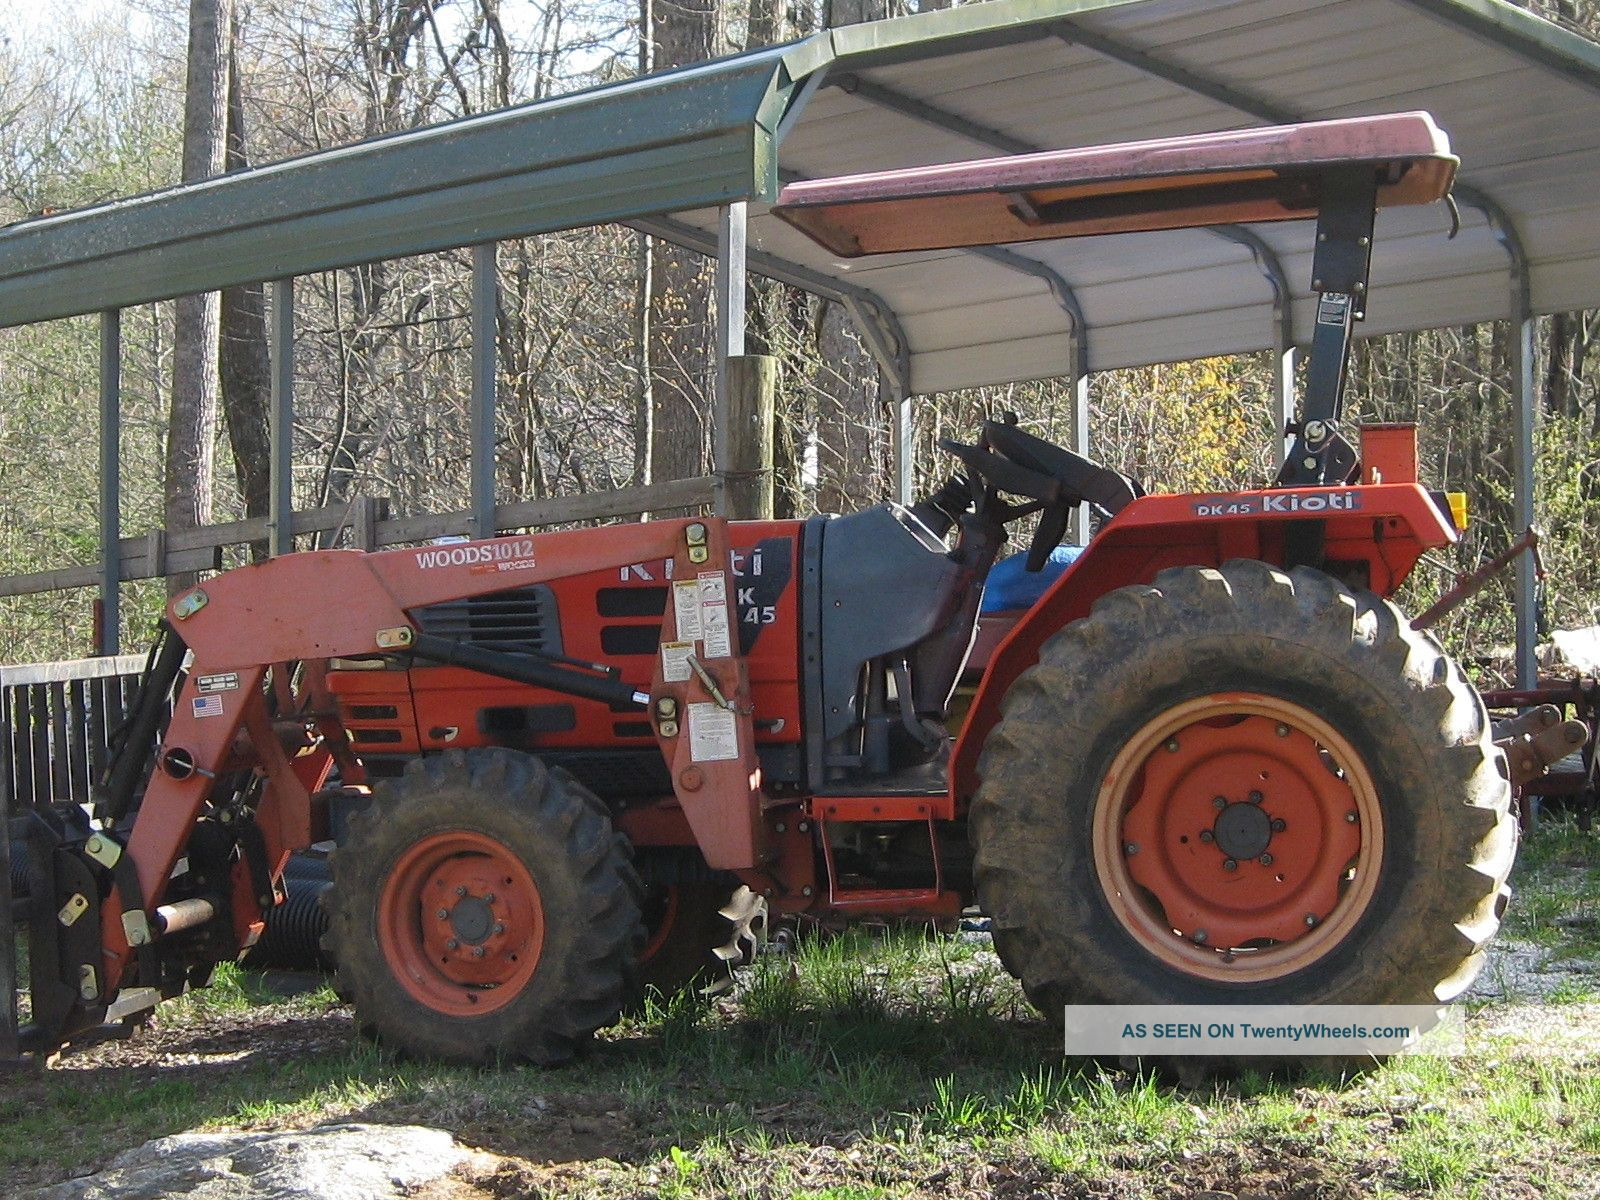 Kioti Dk45 4wd Tractor With Woods Front Loader Tractors photo